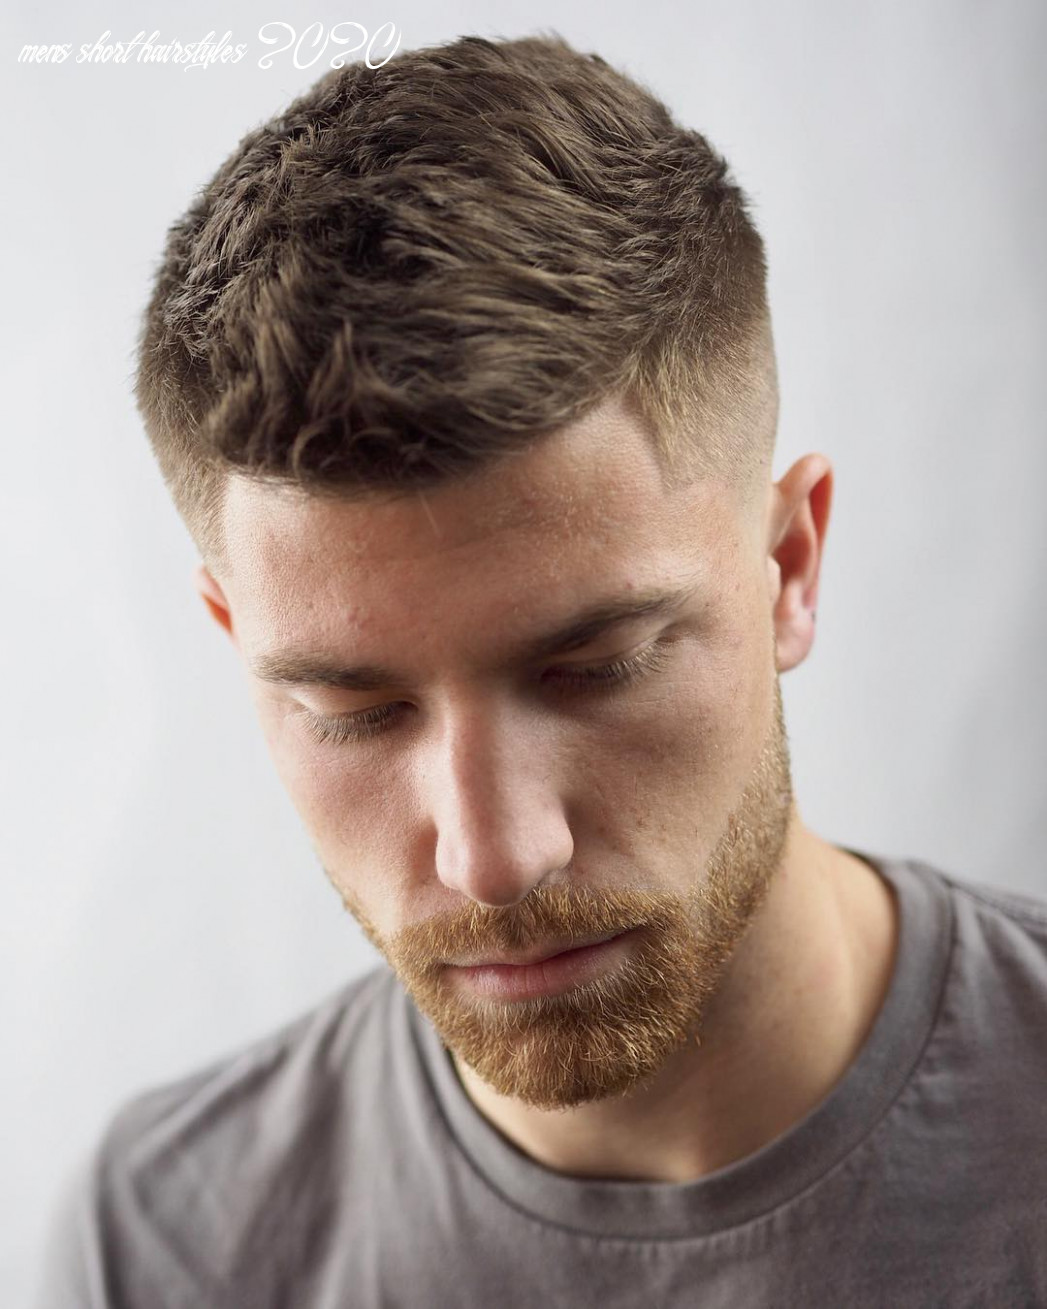 12 short haircuts for men (12 styles) mens short hairstyles 2020